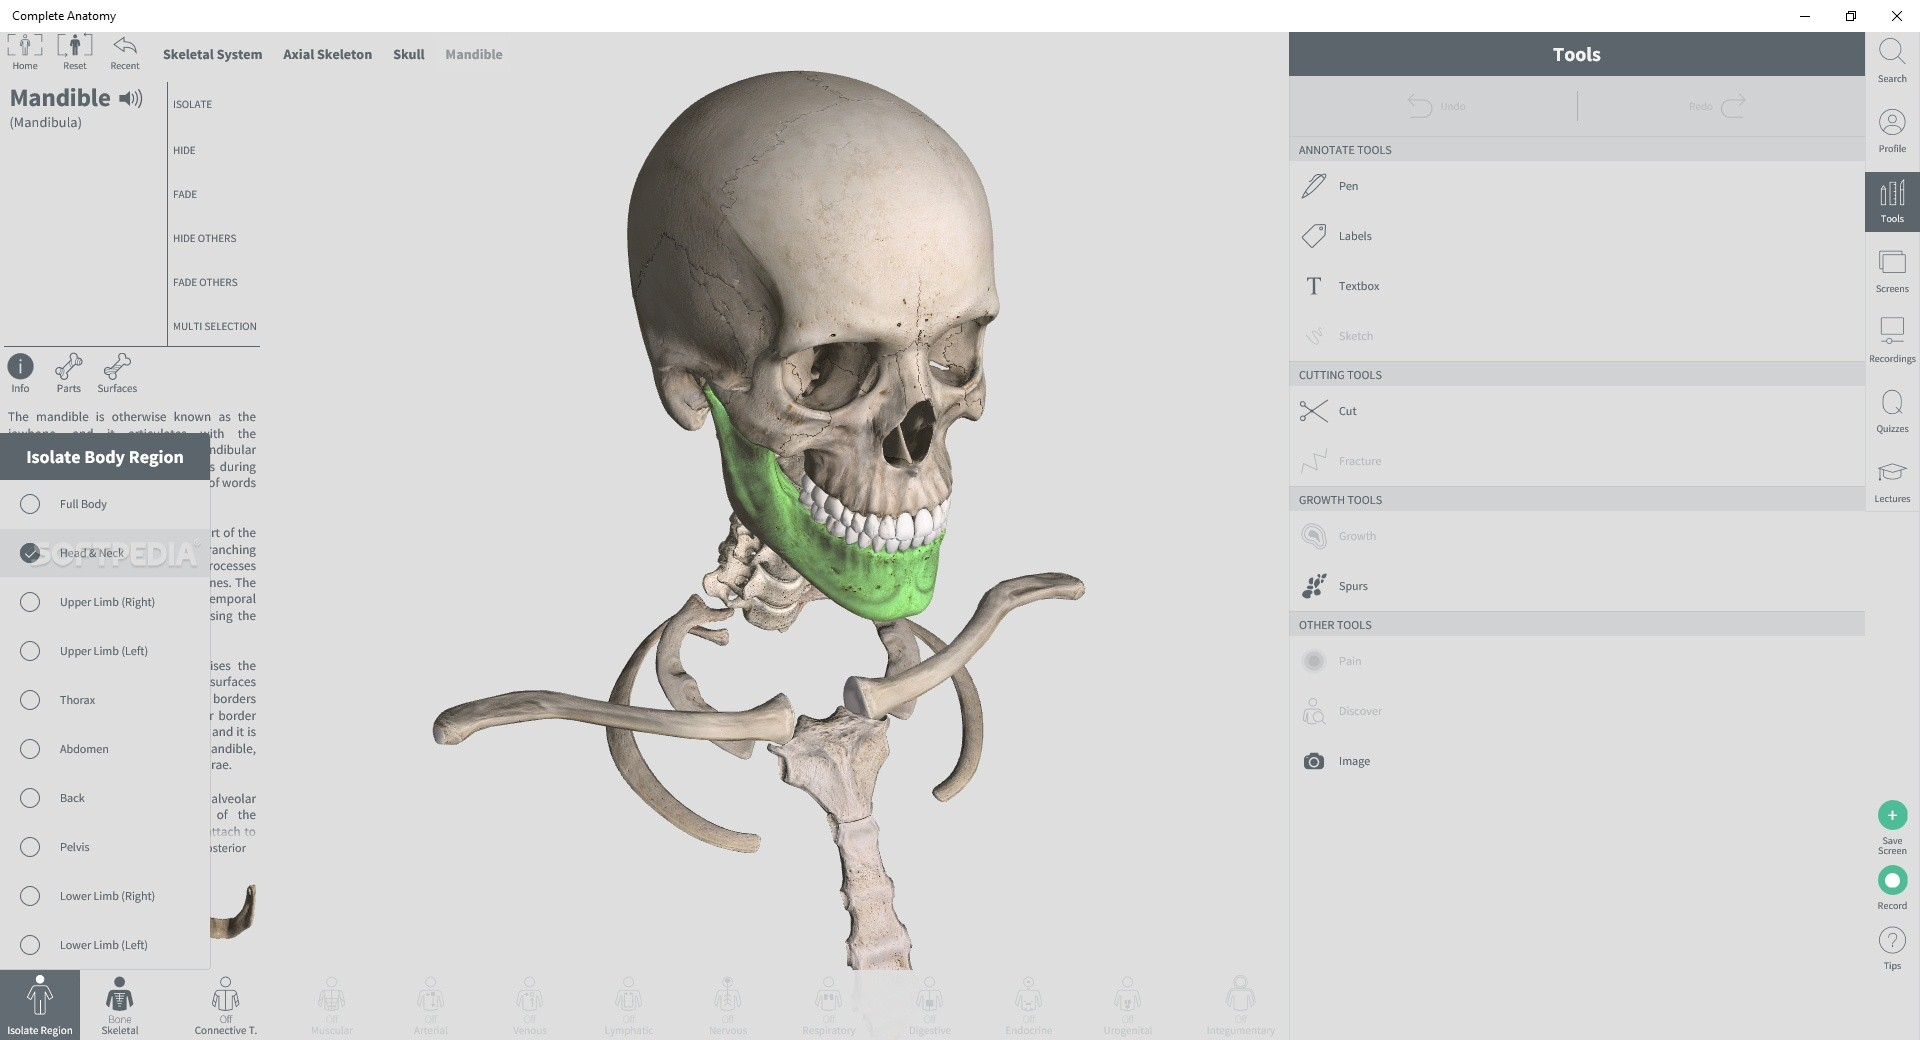 Complete Anatomy 2019 Crack Android